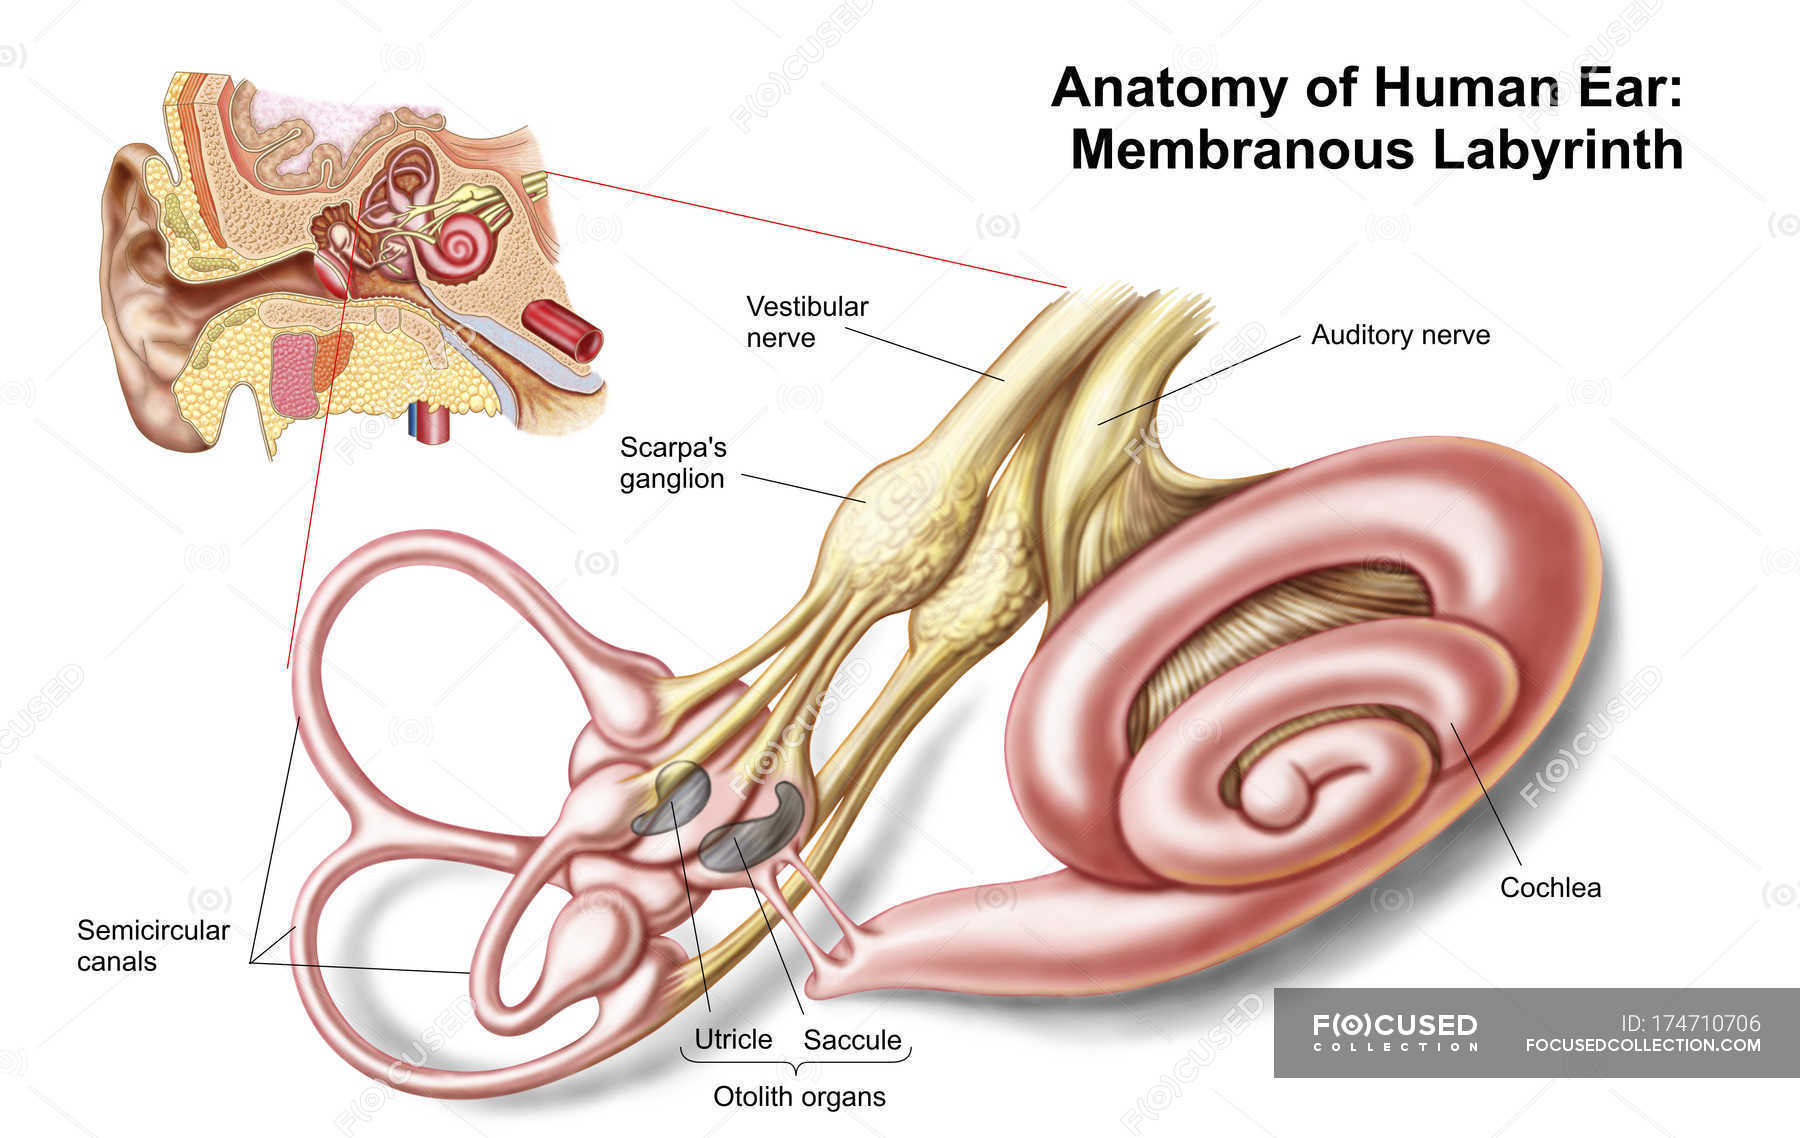 hight resolution of anatomy of human ear with membranous labyrinth stock photos